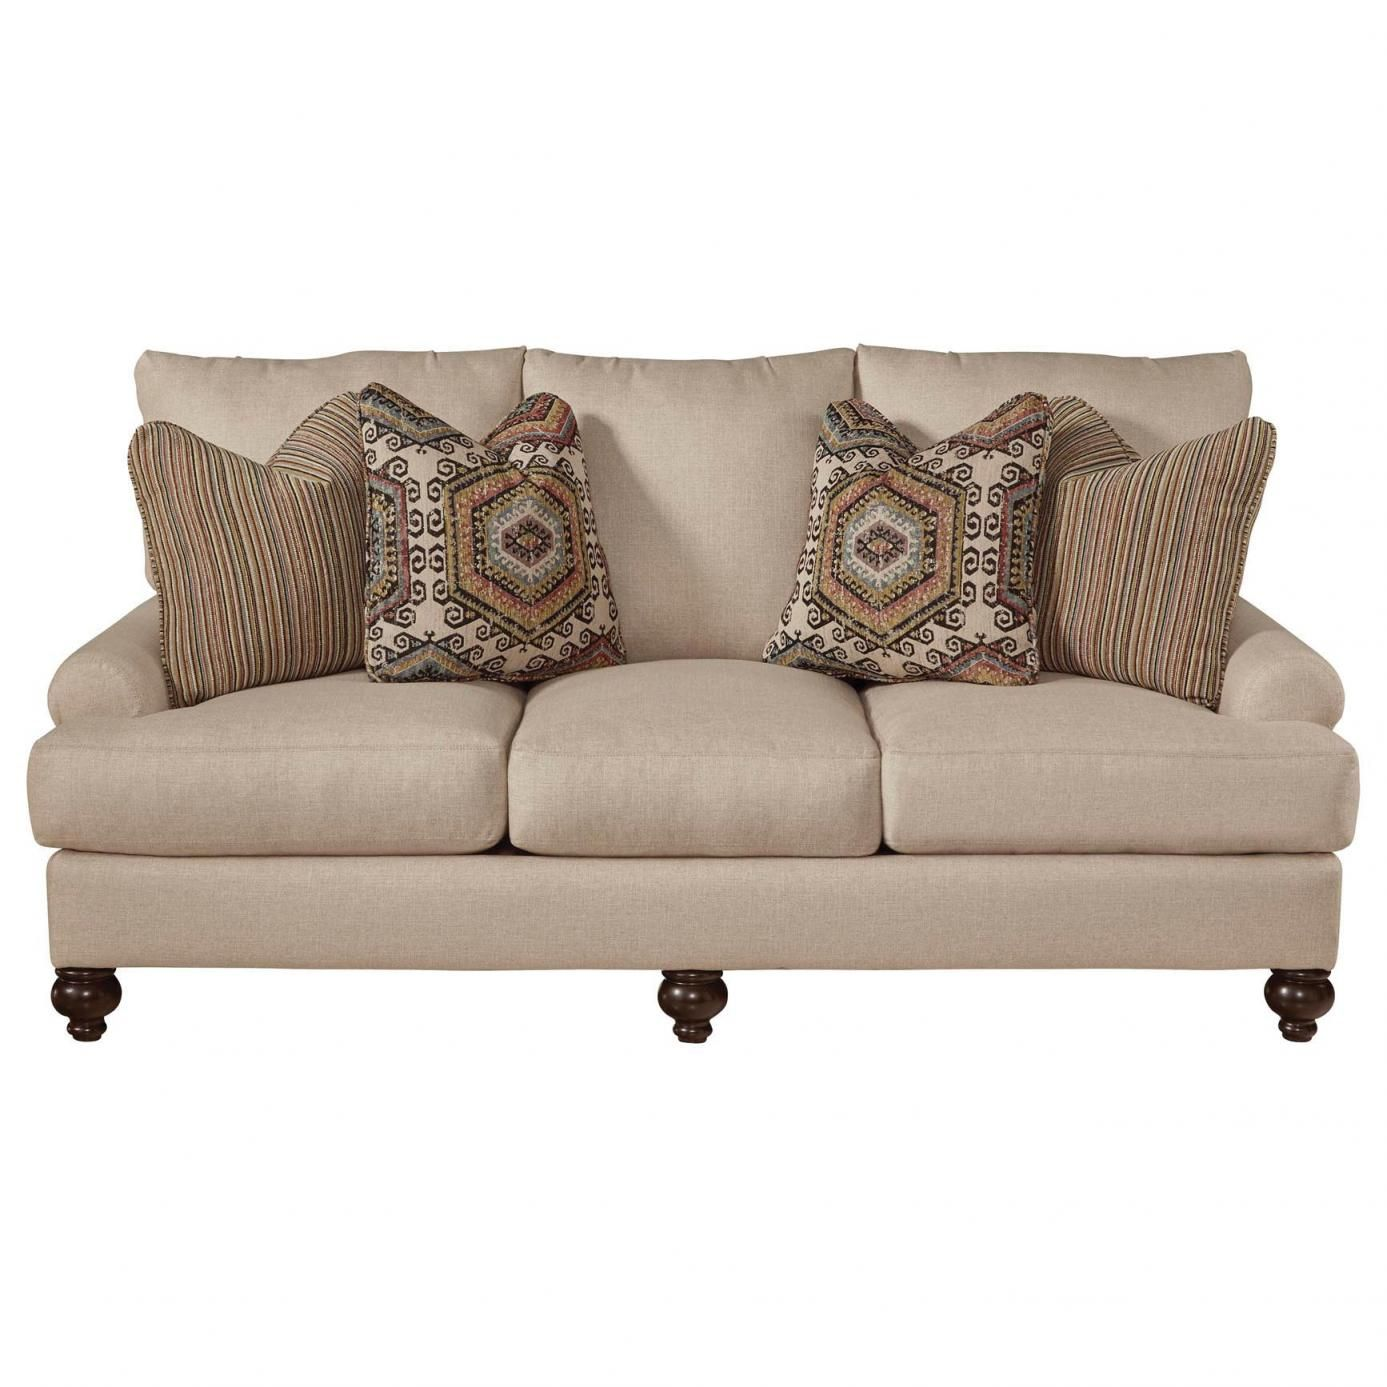 Charmant Jackson Platinum Westchester Sofa In Fiesta And Hemp